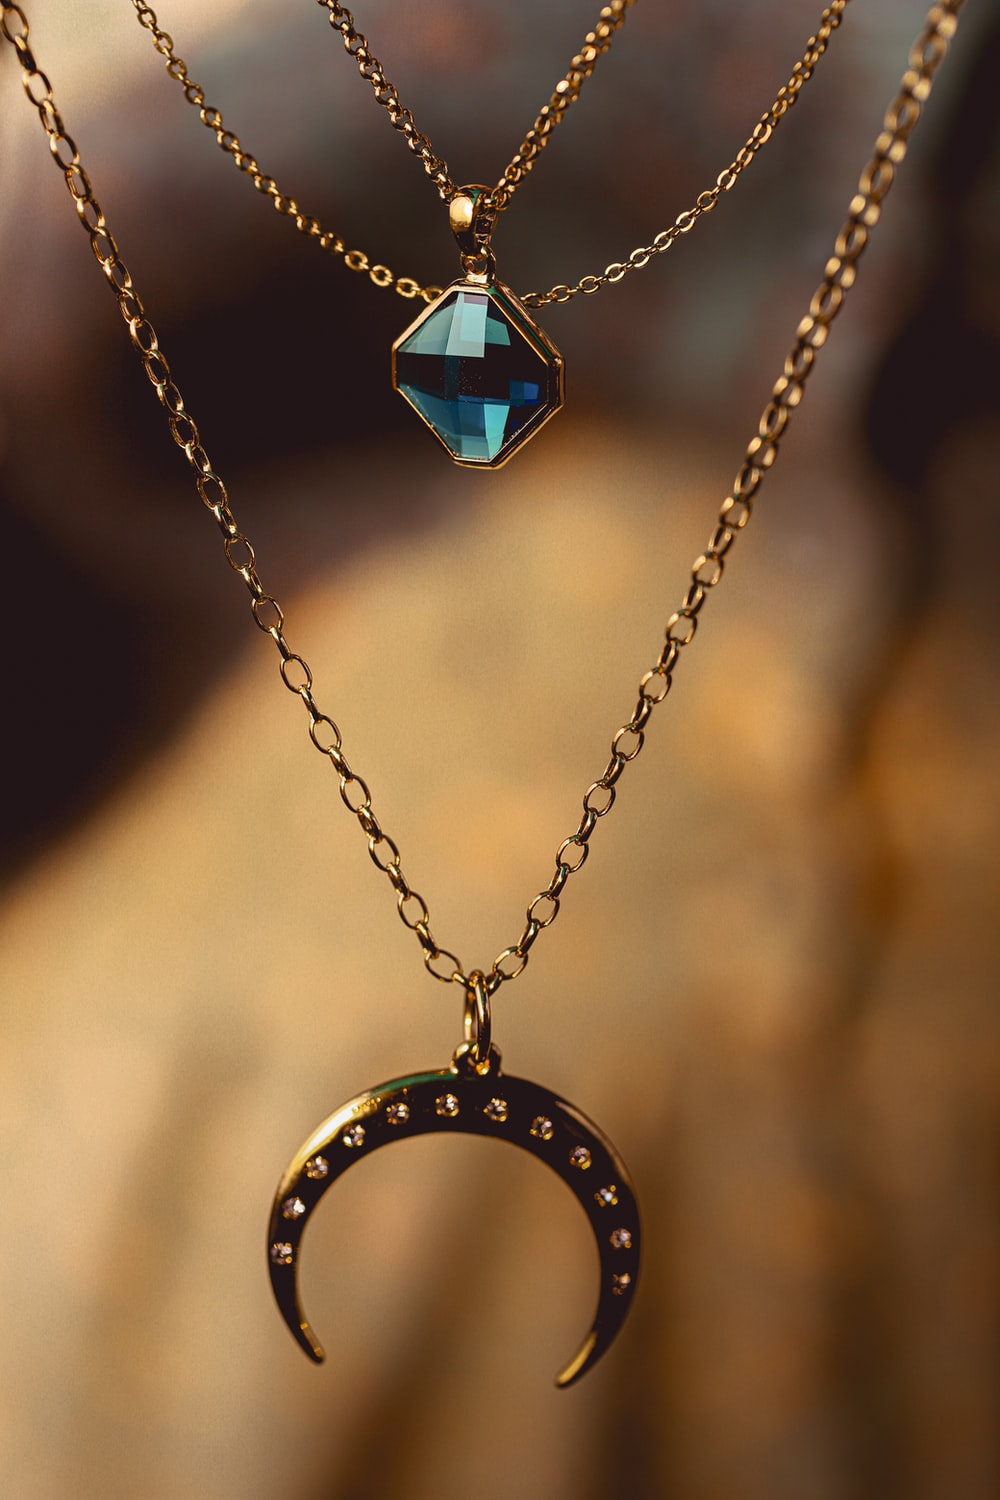 silver chain necklace with blue gemstone pendant